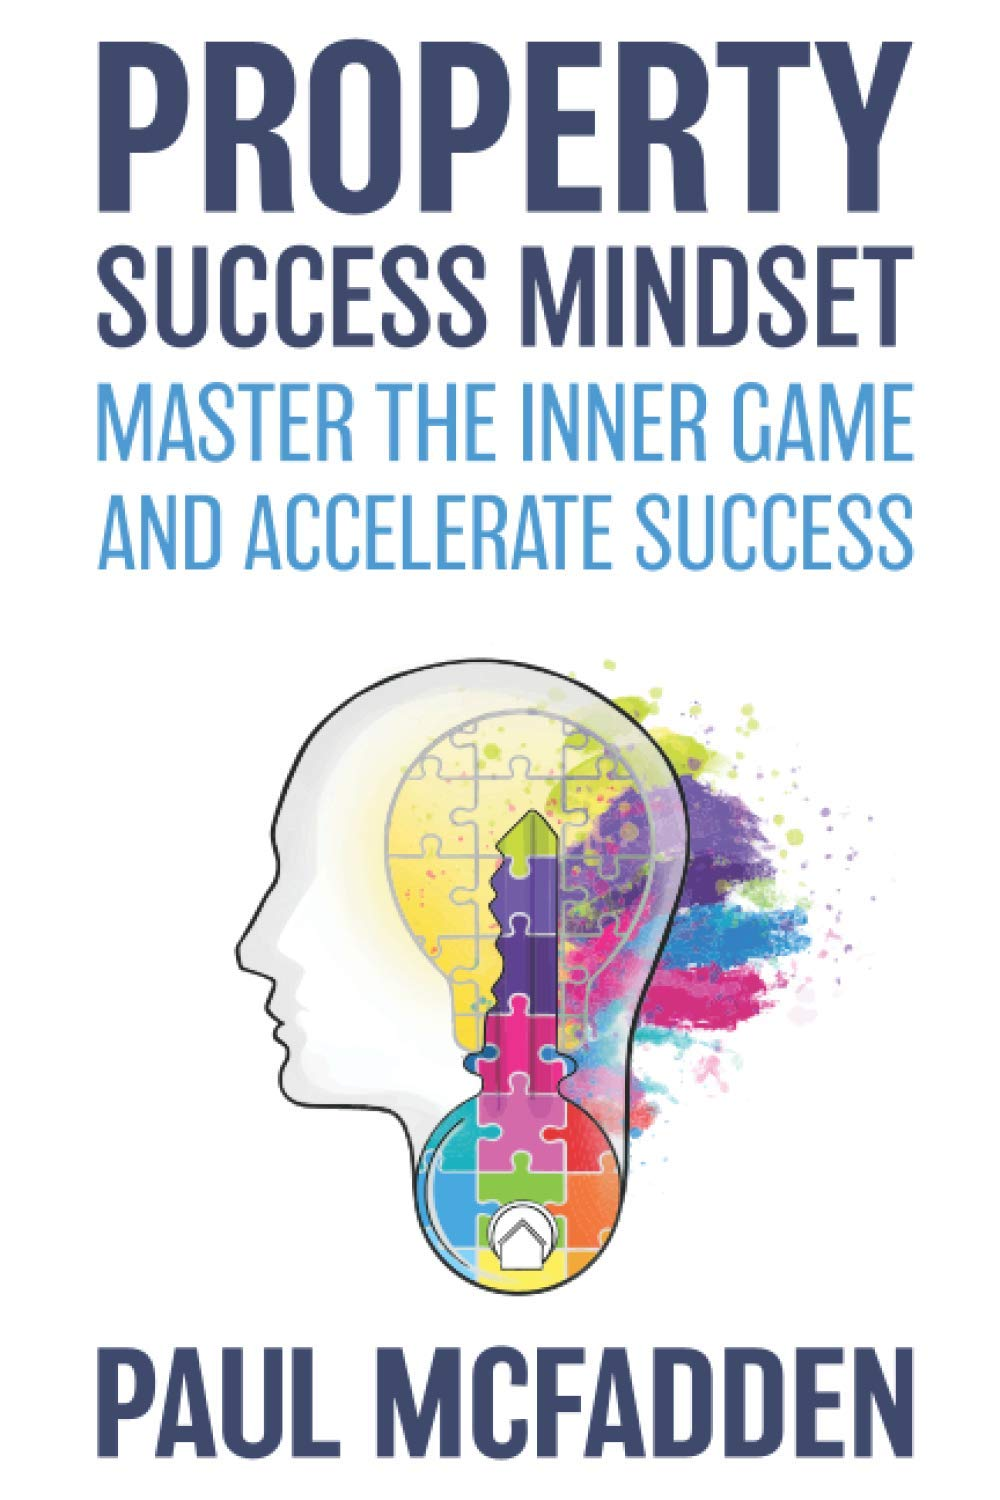 Image OfProperty Success Mindset: Master The Inner Game And Accelerate Success